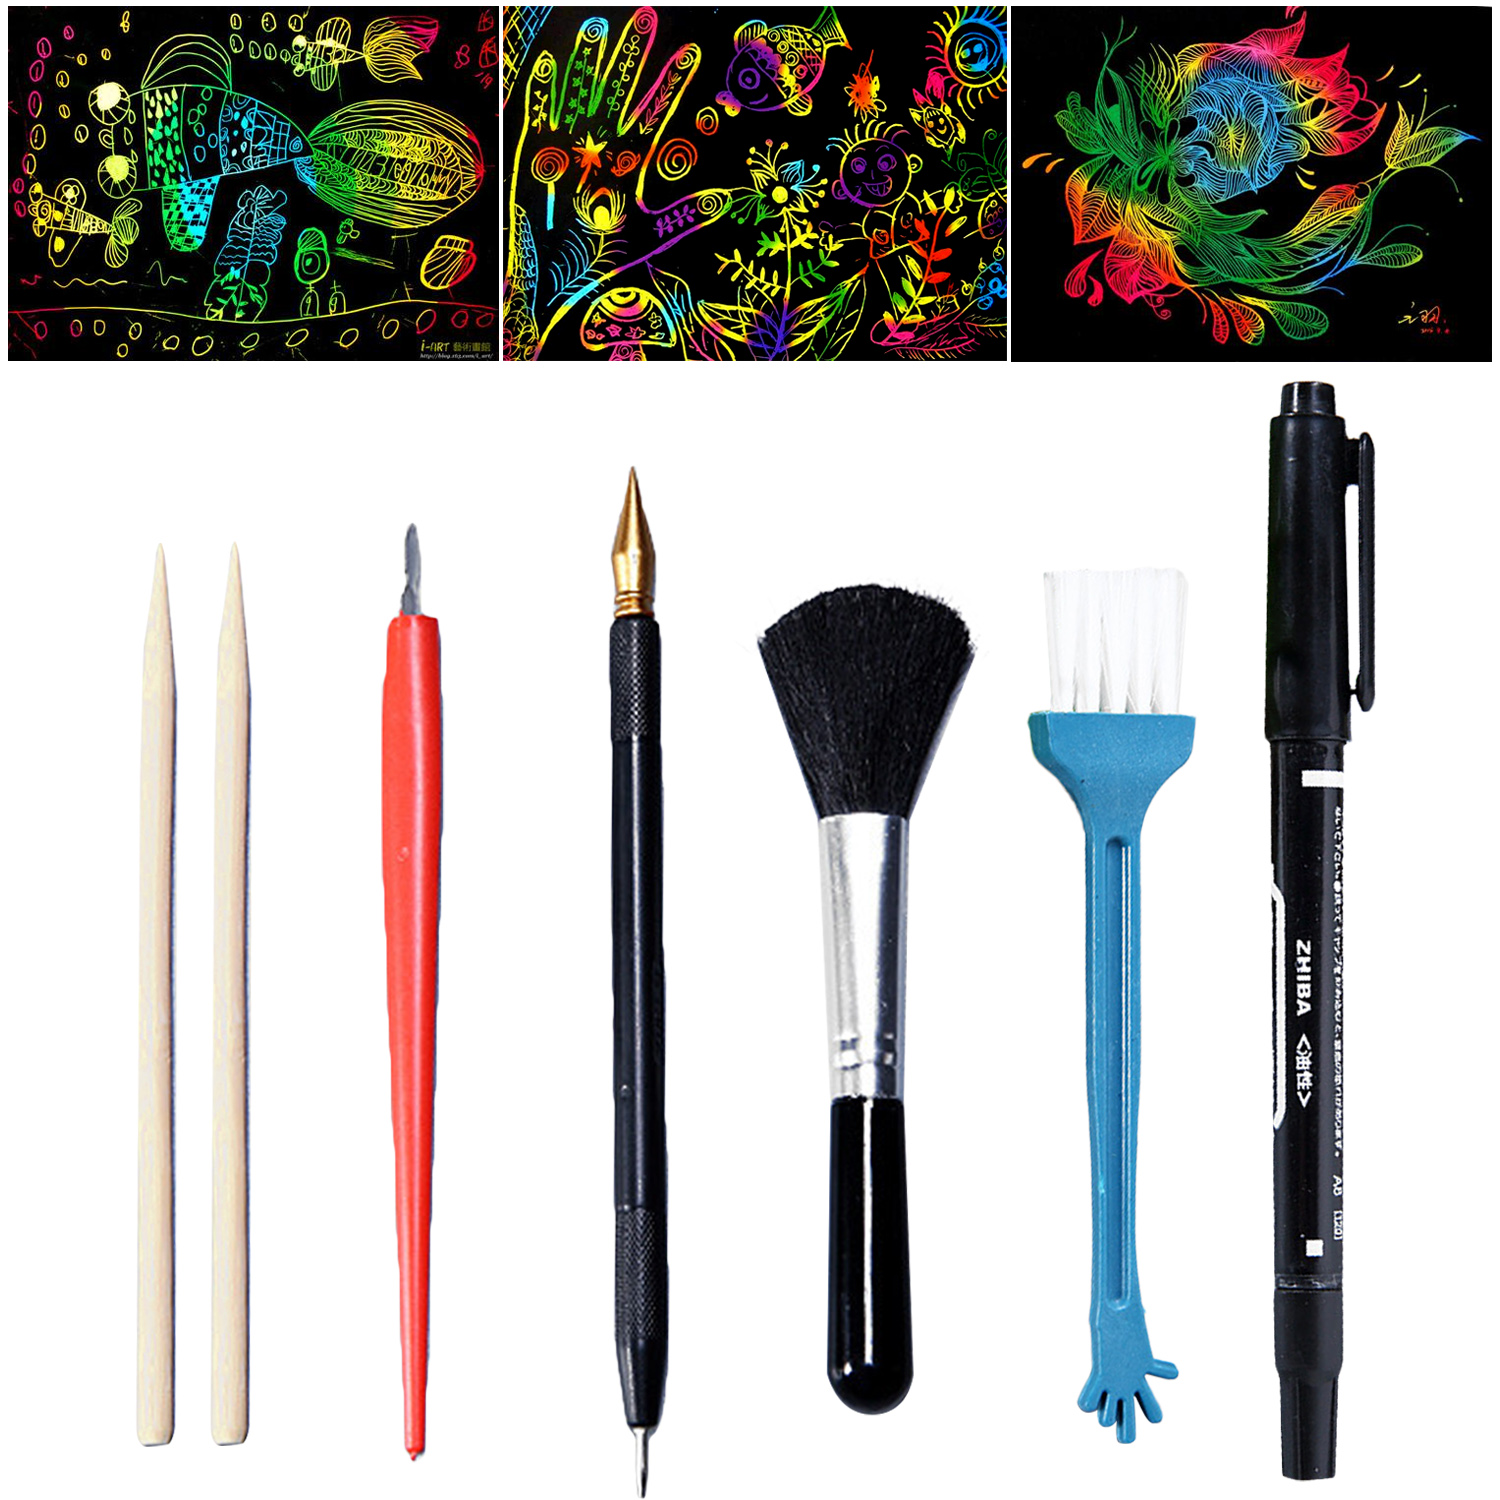 7PCS Magic Scratch Scraping Painting Tools Bamboo Sticks Scraper Repair Scratch Pen Black Brush DIY Painting Coloring Toy